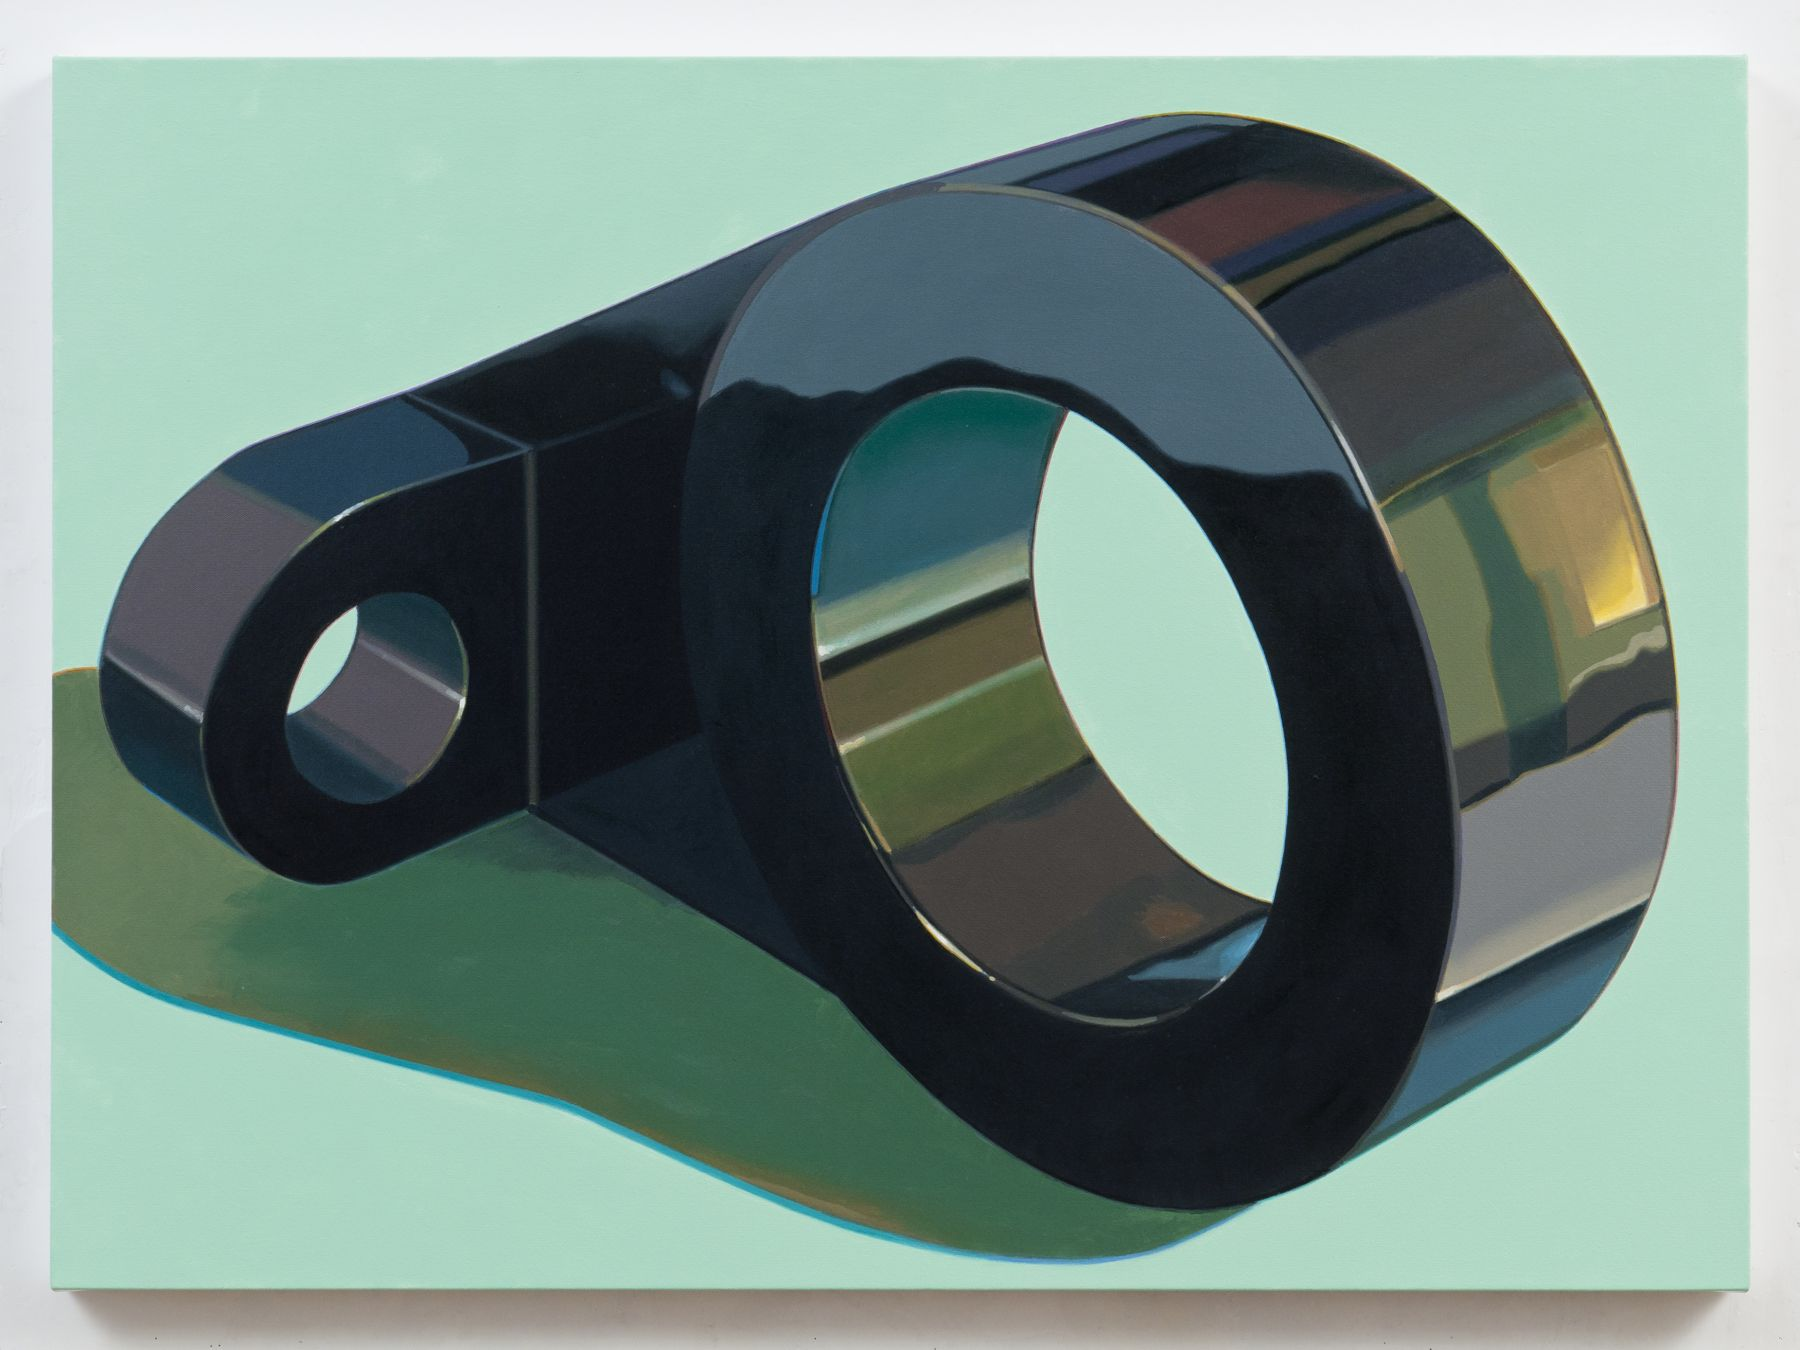 Robert Cottingham, Component IX, 2011, oil on canvas, 32 1/2 x 44 1/2 inches